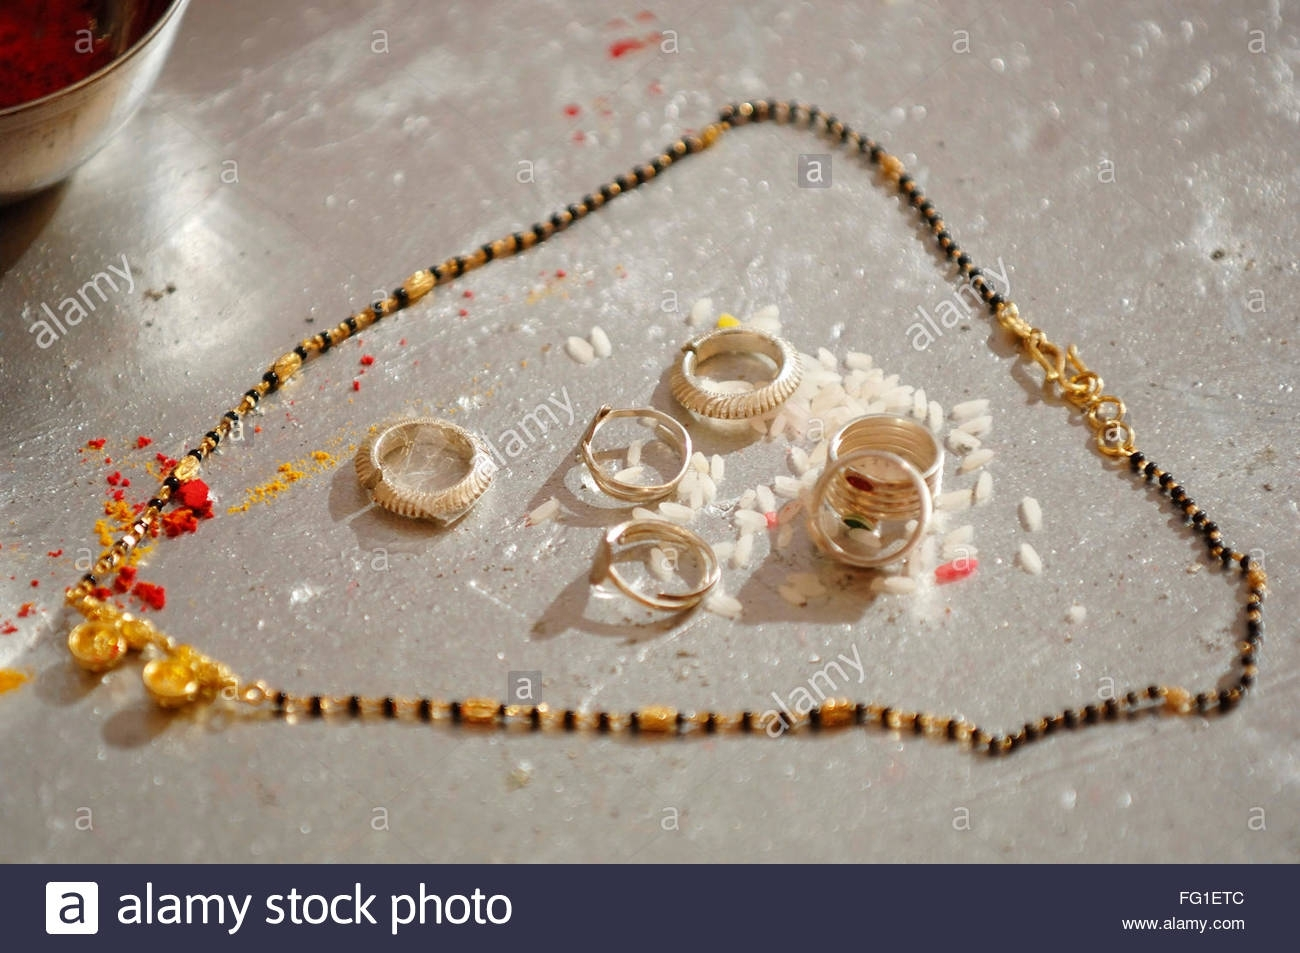 Toe Rings Stock Photos & Toe Rings Stock Images – Alamy Within Best And Newest Traditional Toe Rings (View 3 of 15)